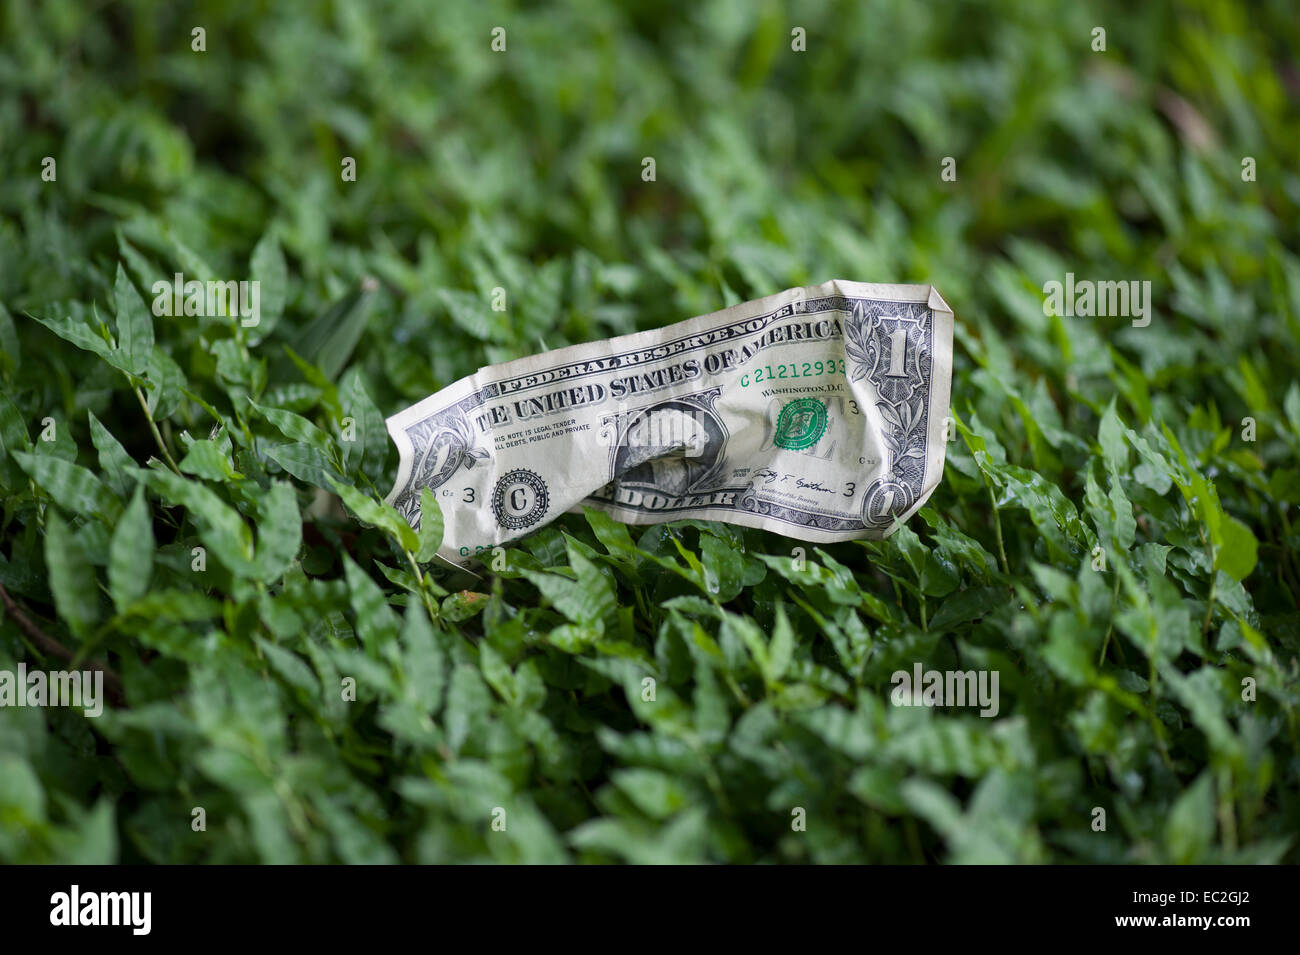 crumpled one dollar bill lying on grass - Stock Image